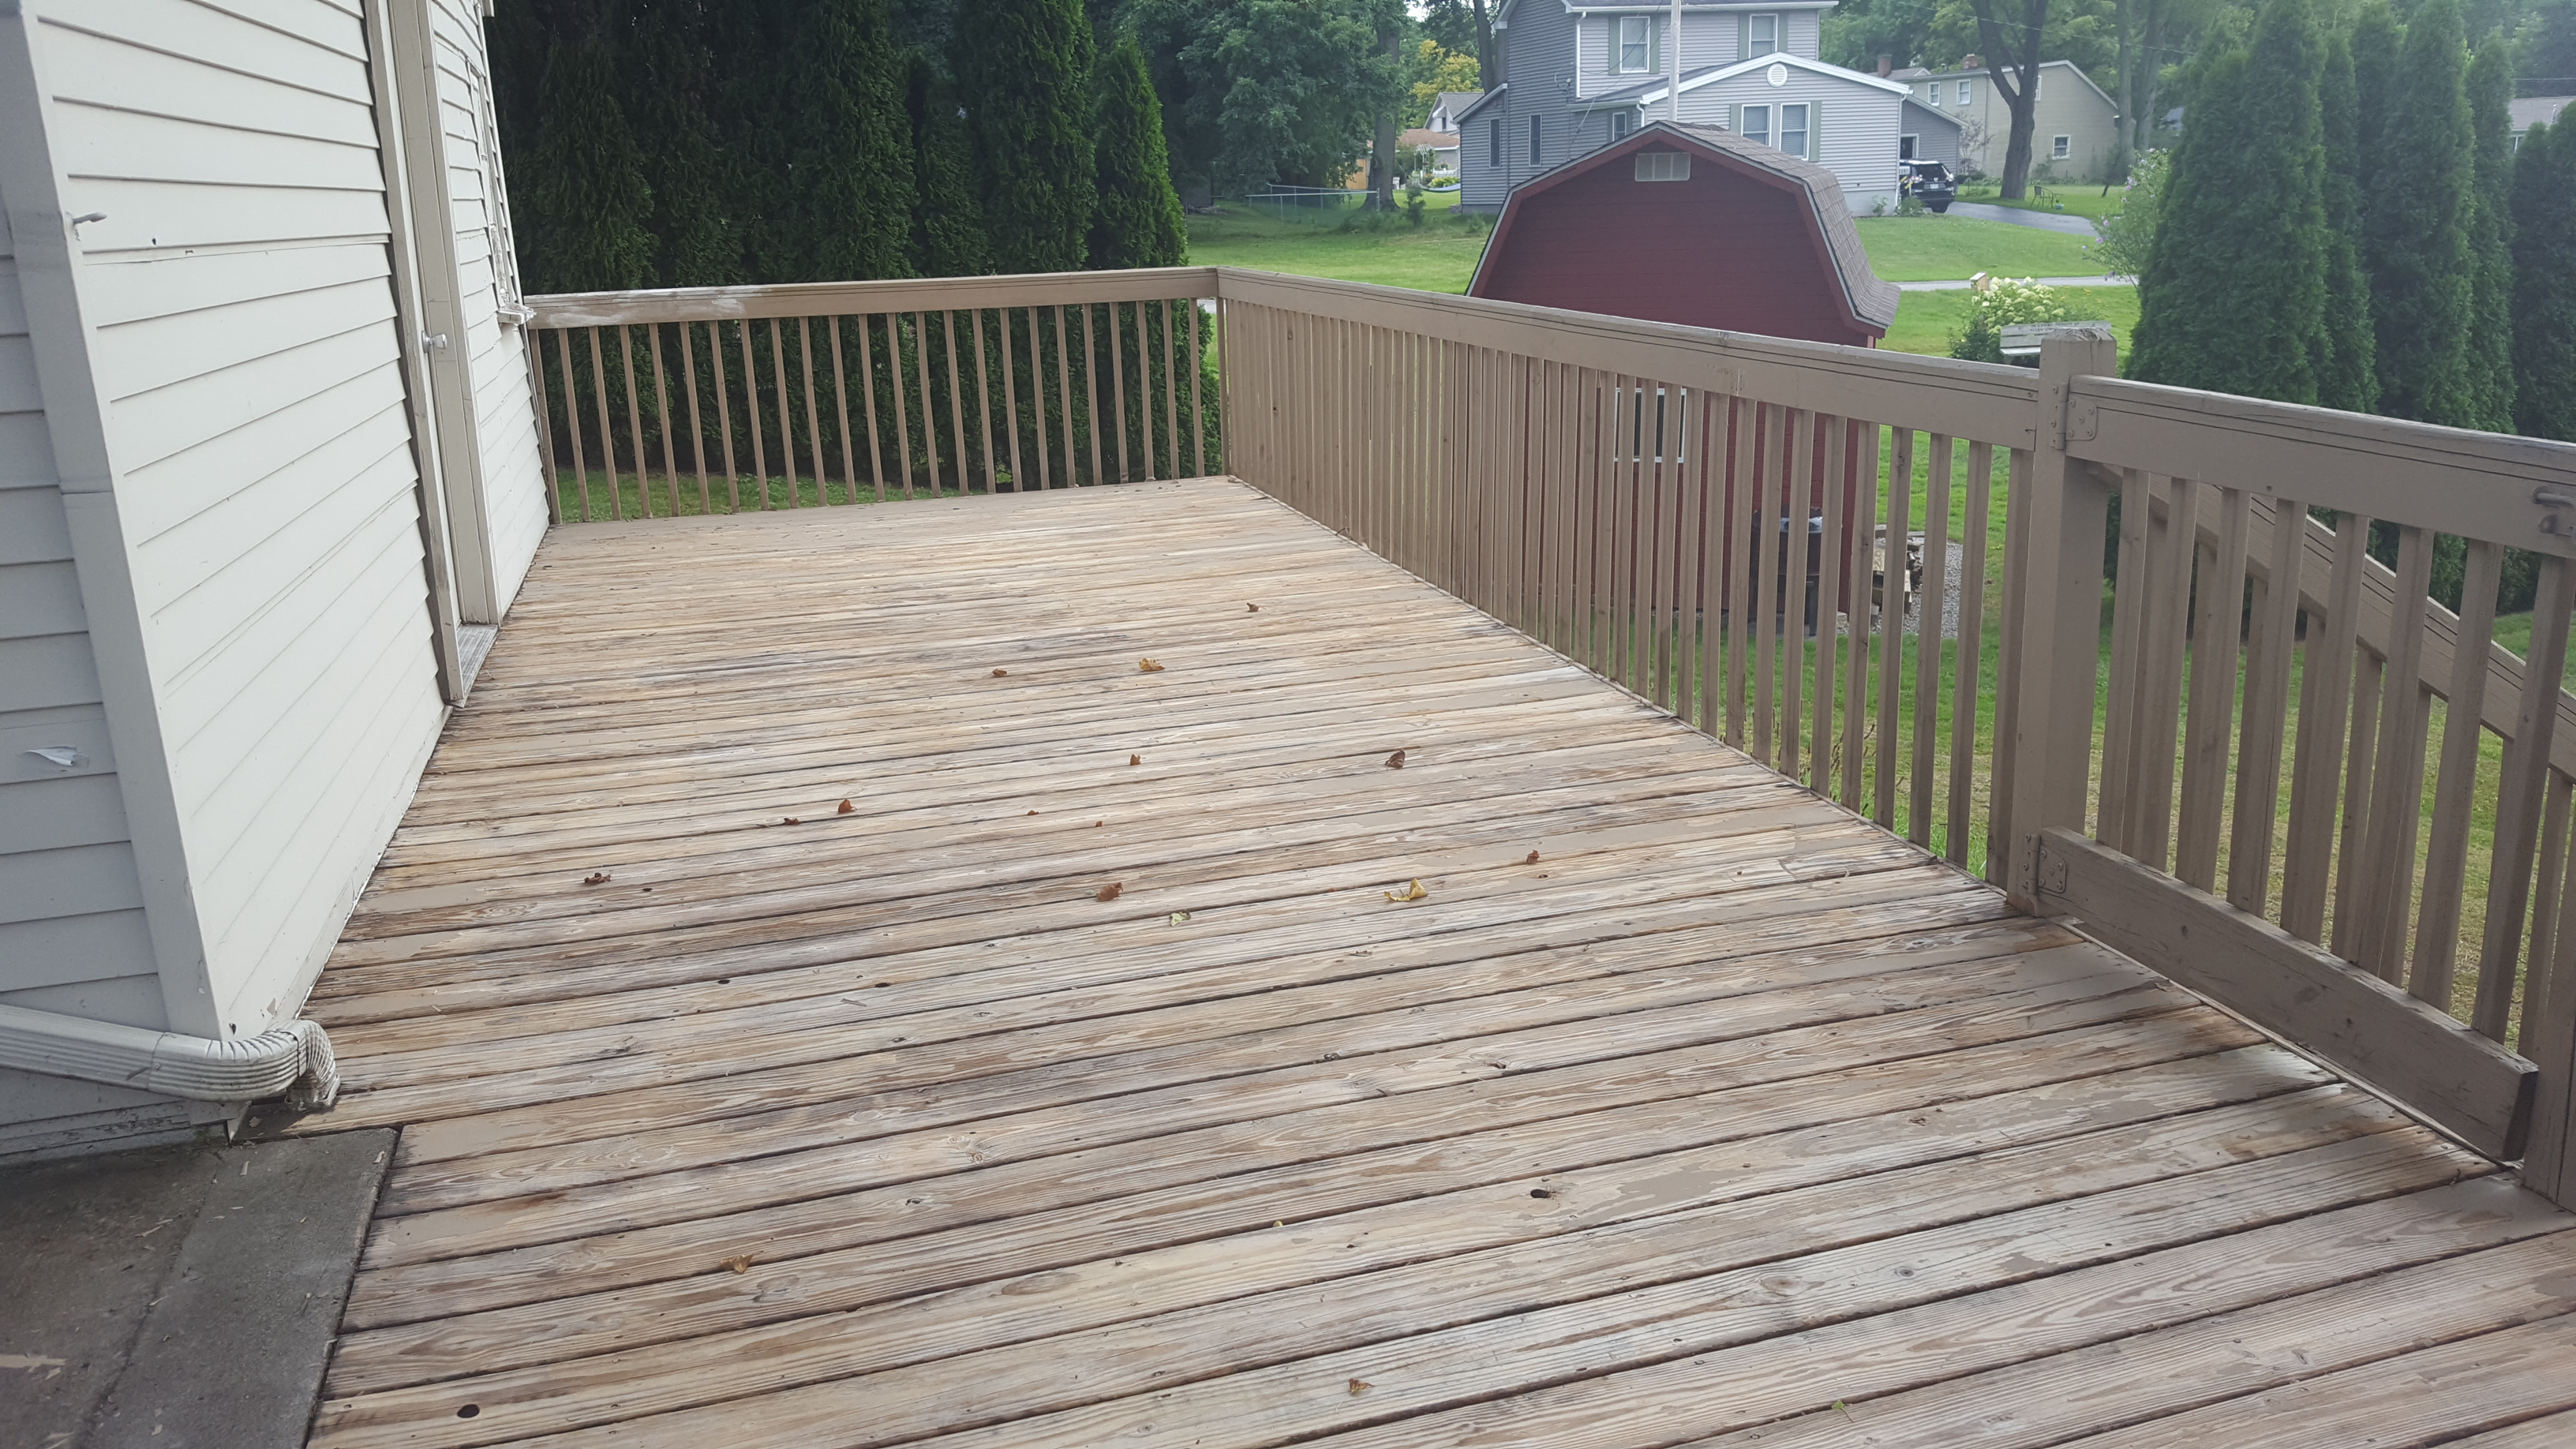 Removing Peeling Paint From Deck